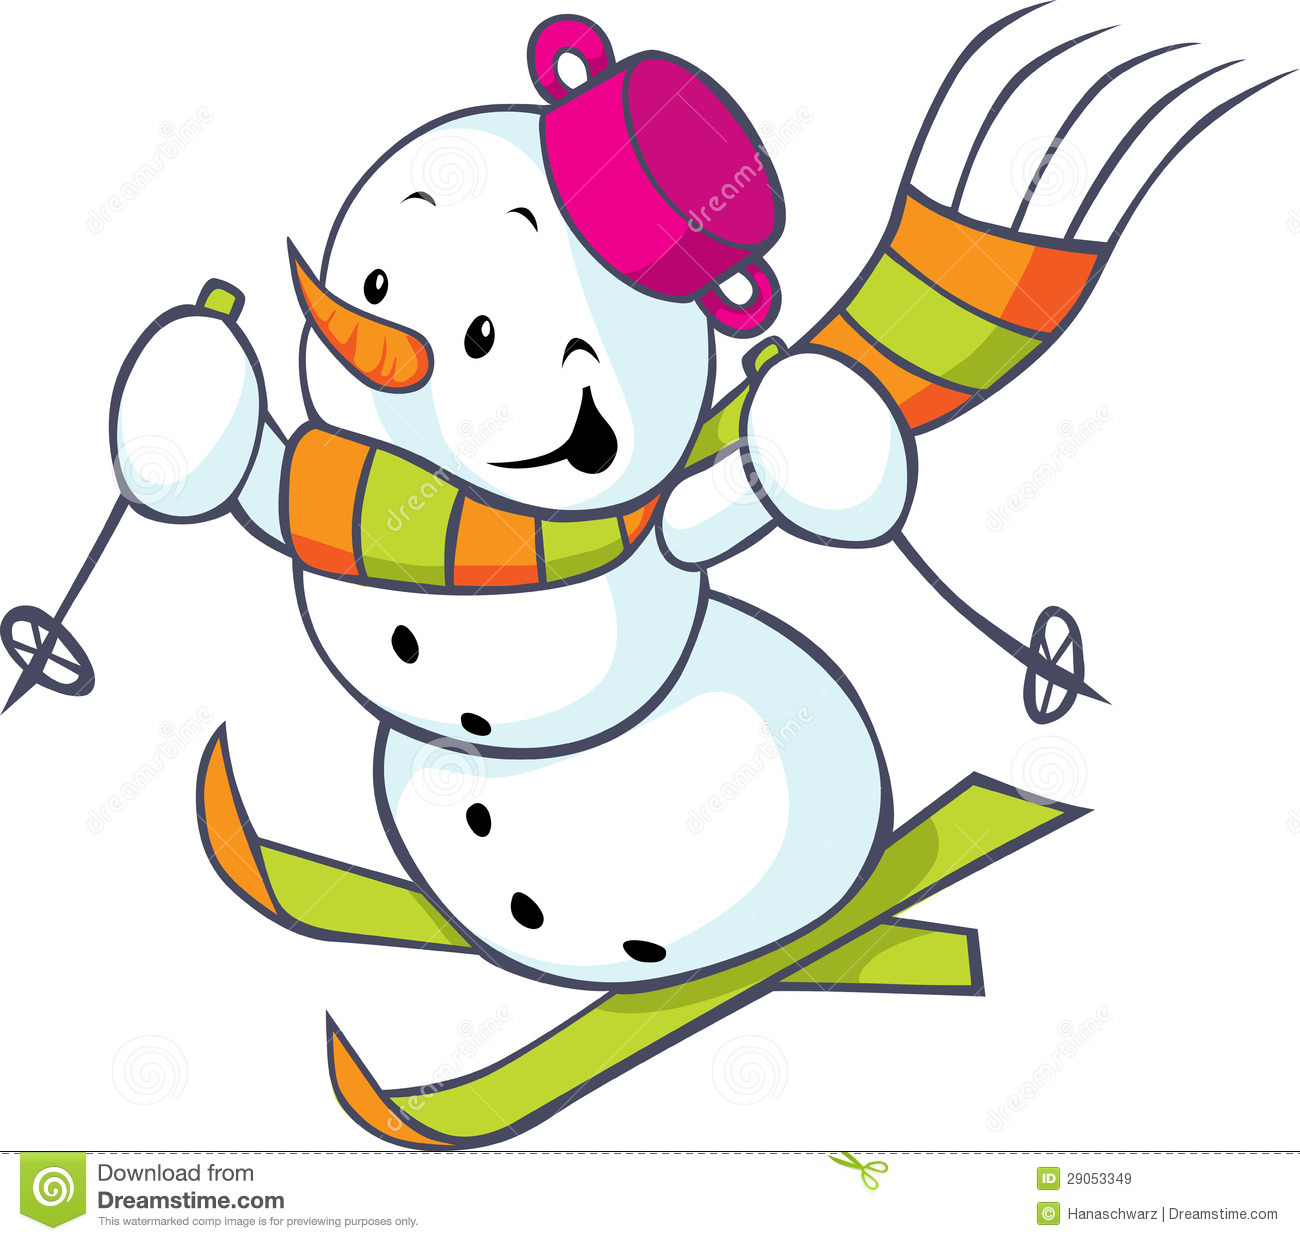 Cheerful Snowman On Skis Royalty Free Stock Images - Image: 29053349